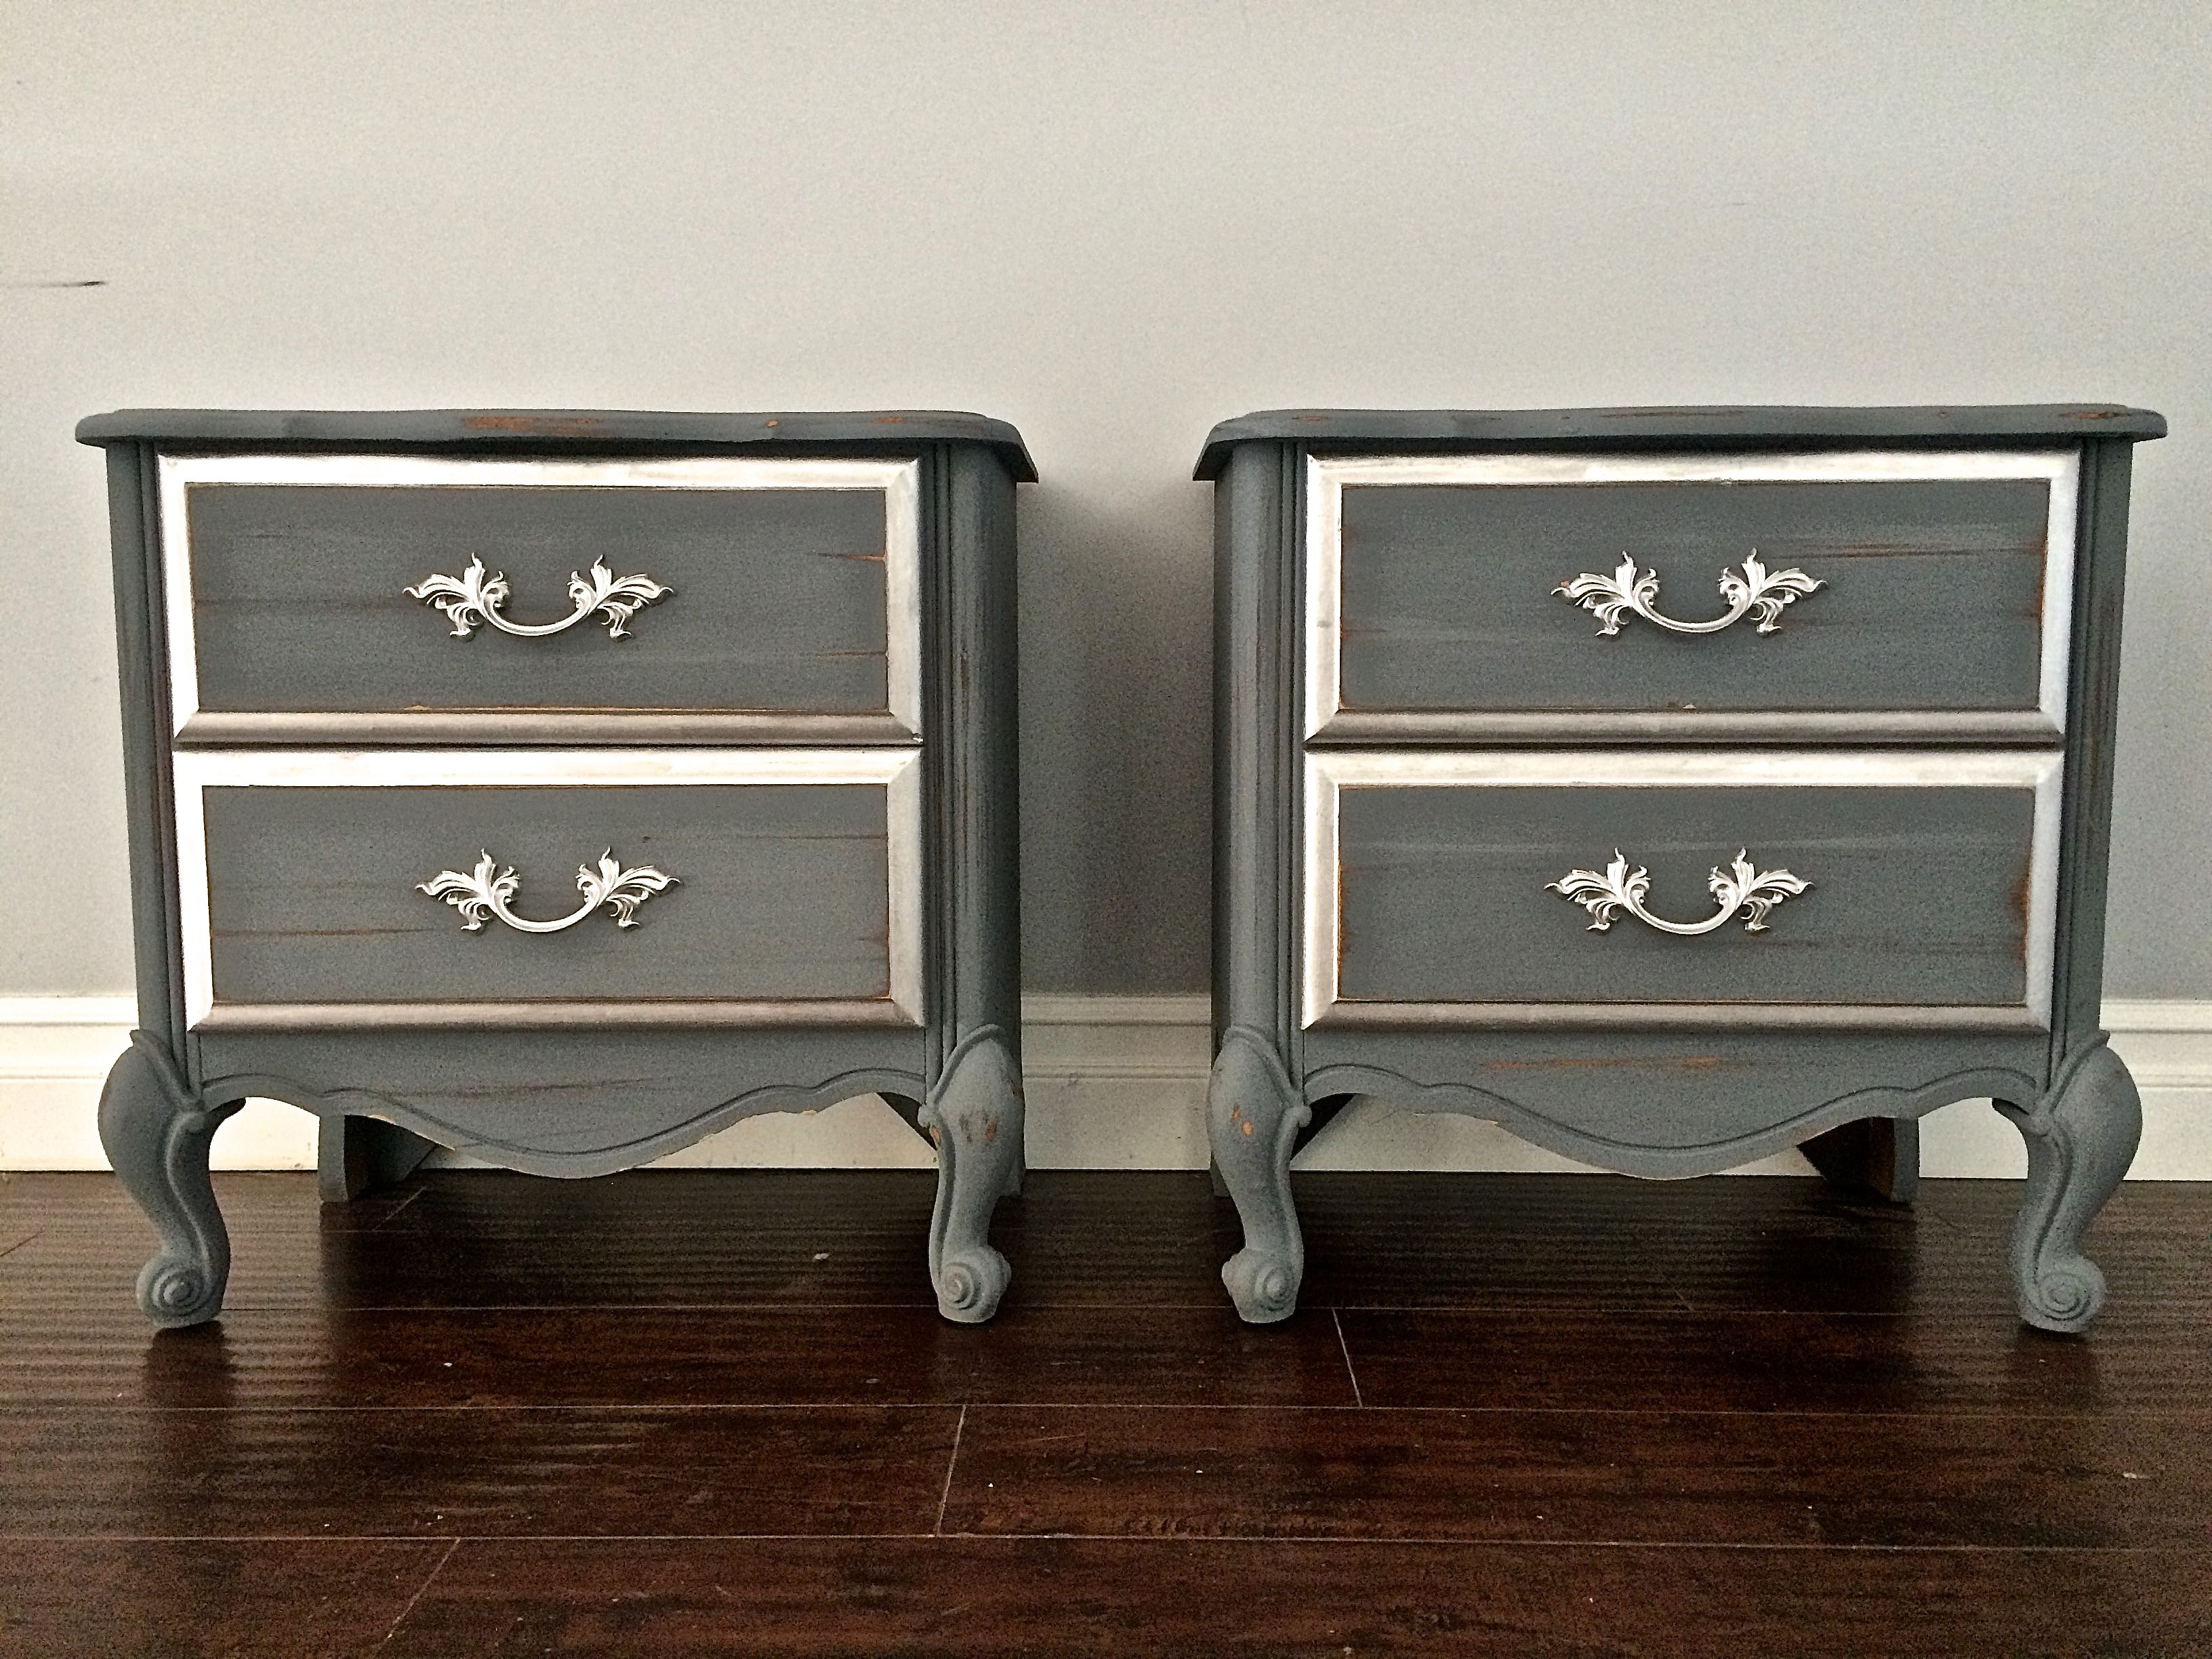 Silver Leaf Bedroom Furniture Shabby Chic Gray Silver Leaf End Tables Nightstands 200